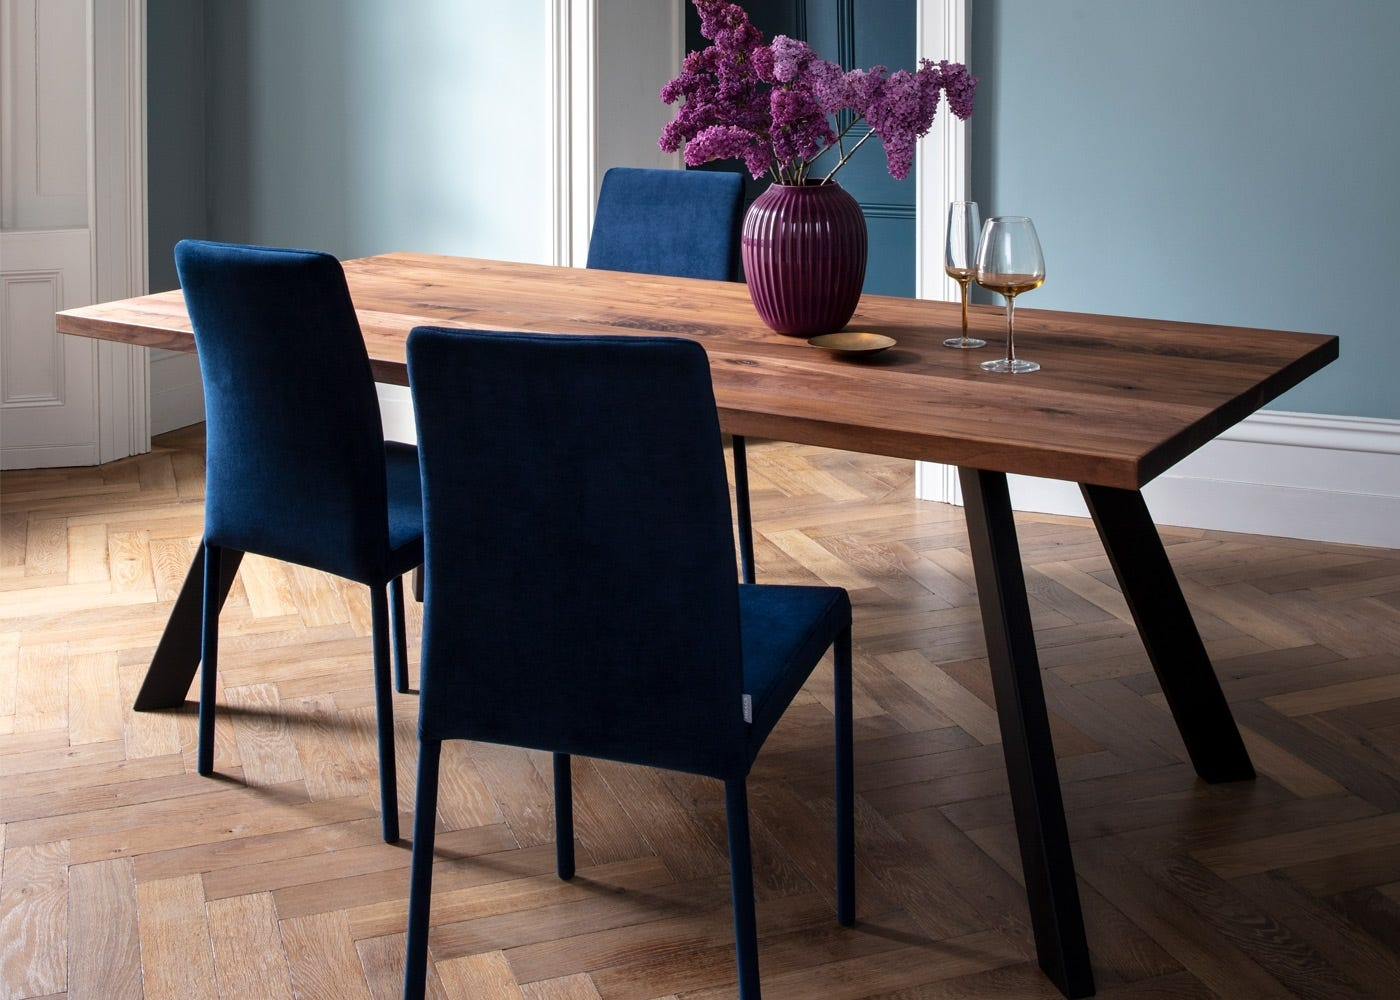 Image shows Madrid dining table in walnut with Bronte chairs and Hammershoi vase plum